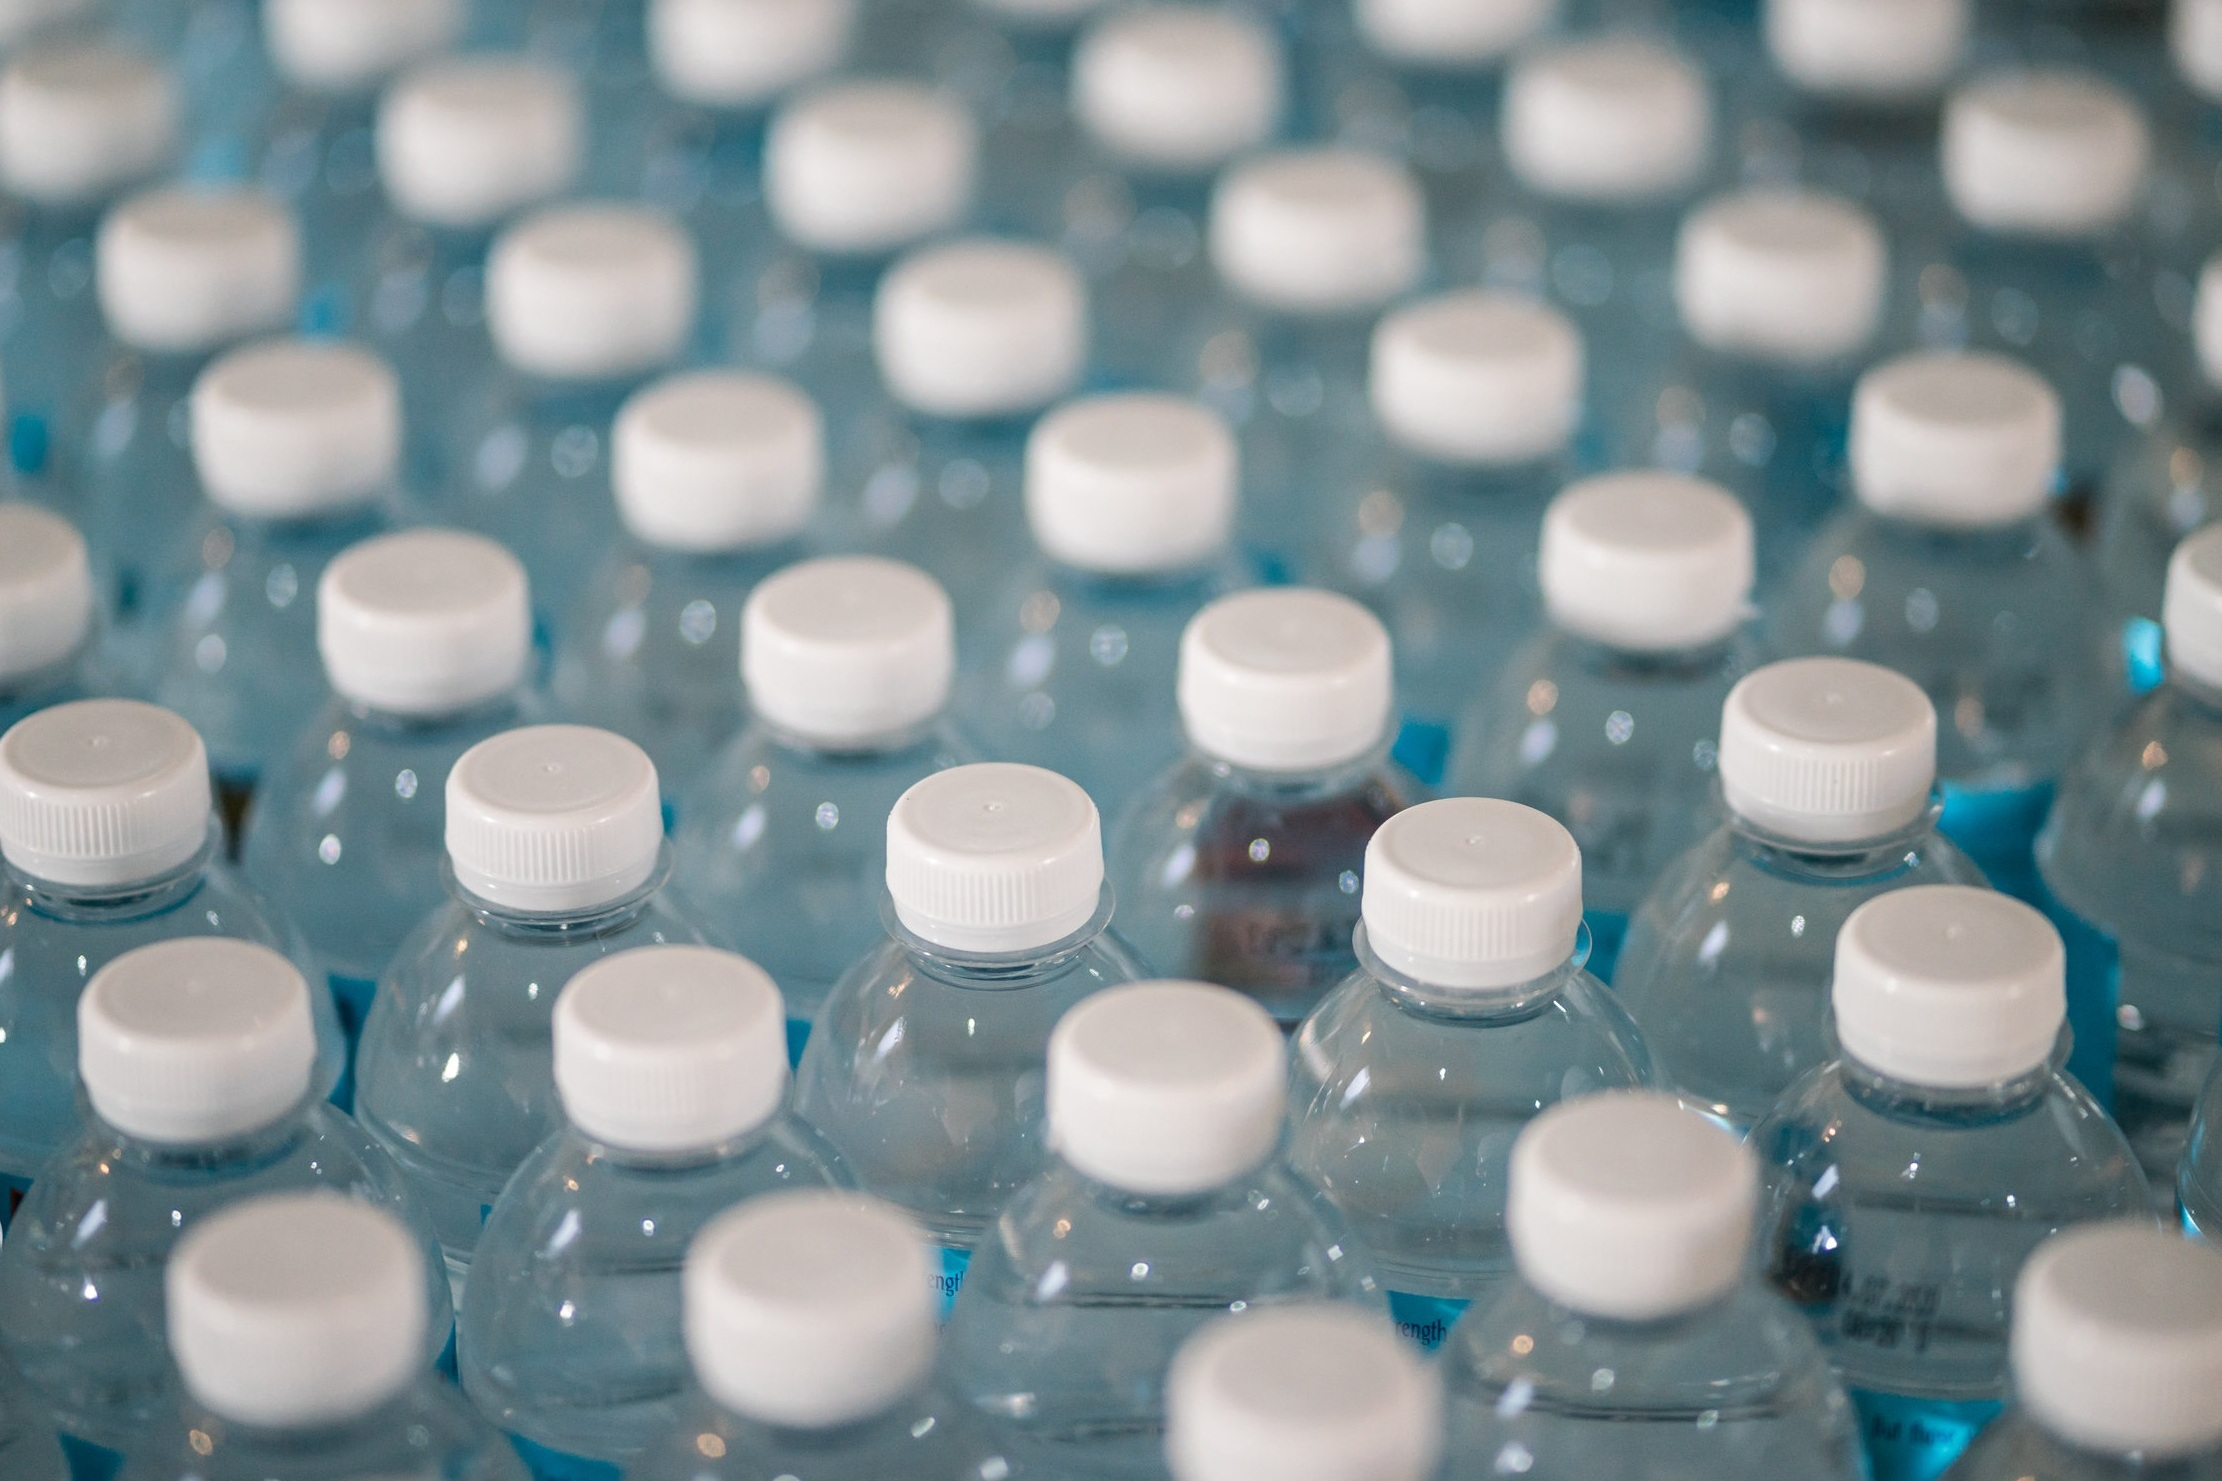 38 million plastic bottles go to landfill each year in America alone.